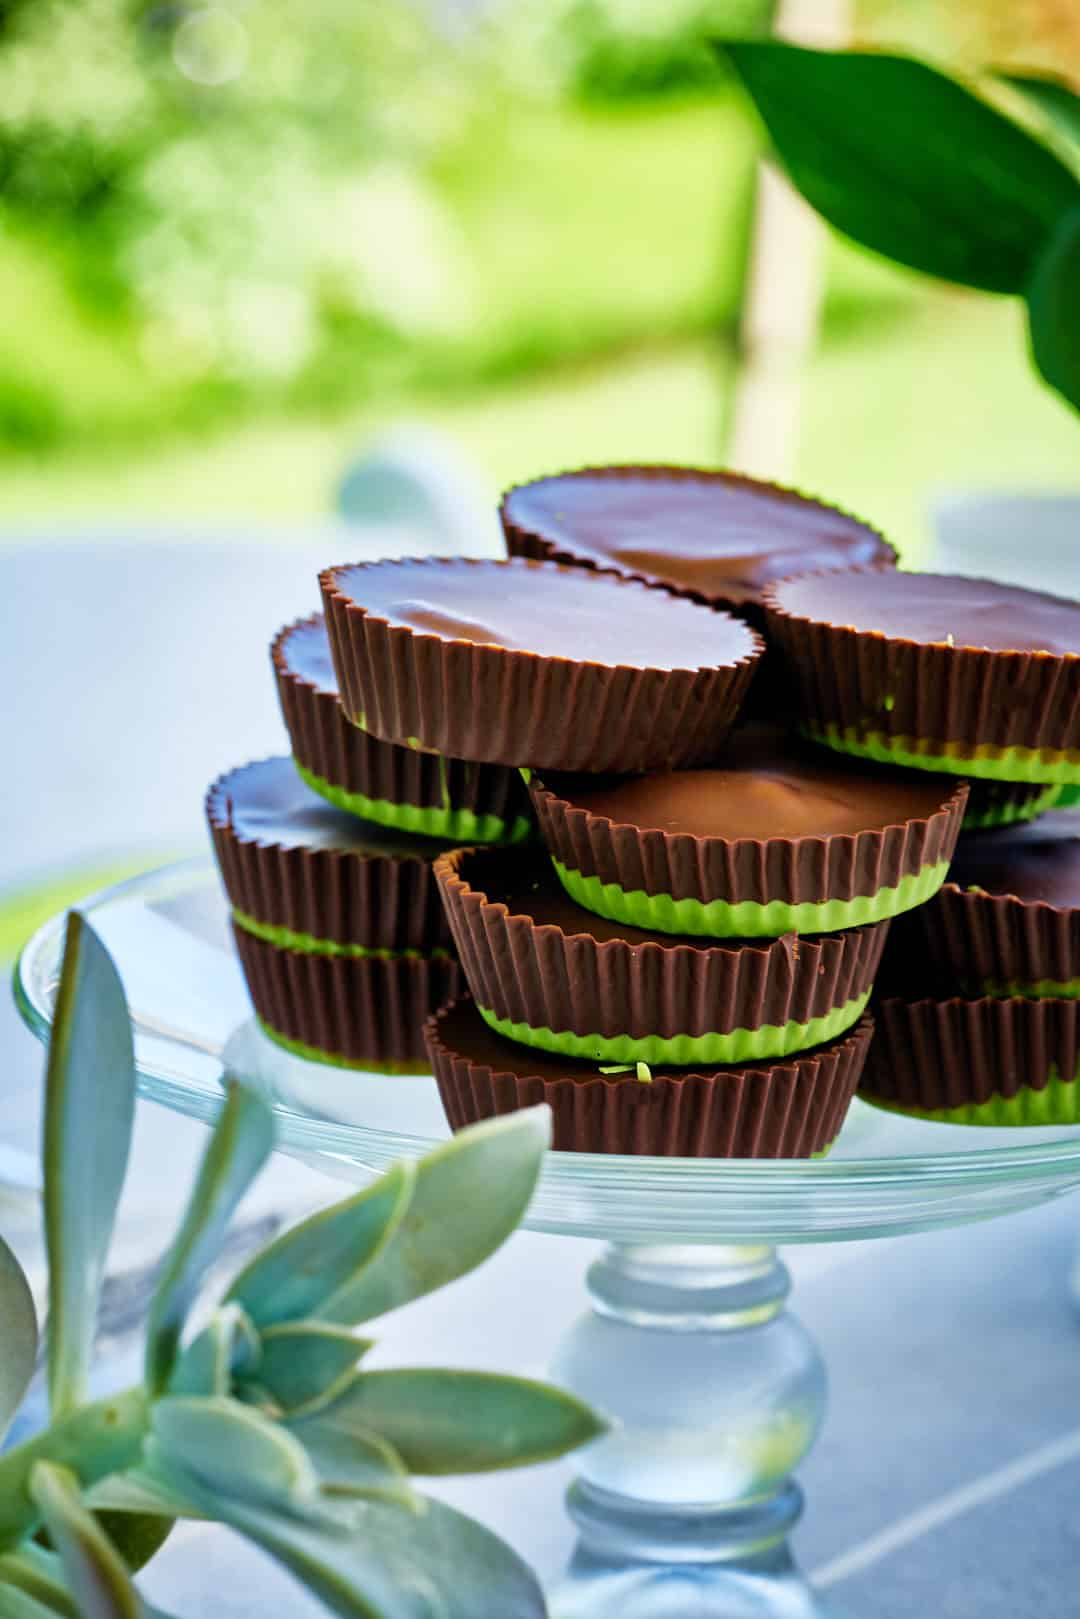 Peanut butter cups with green bottoms on a glass cake pedestal in a garden.